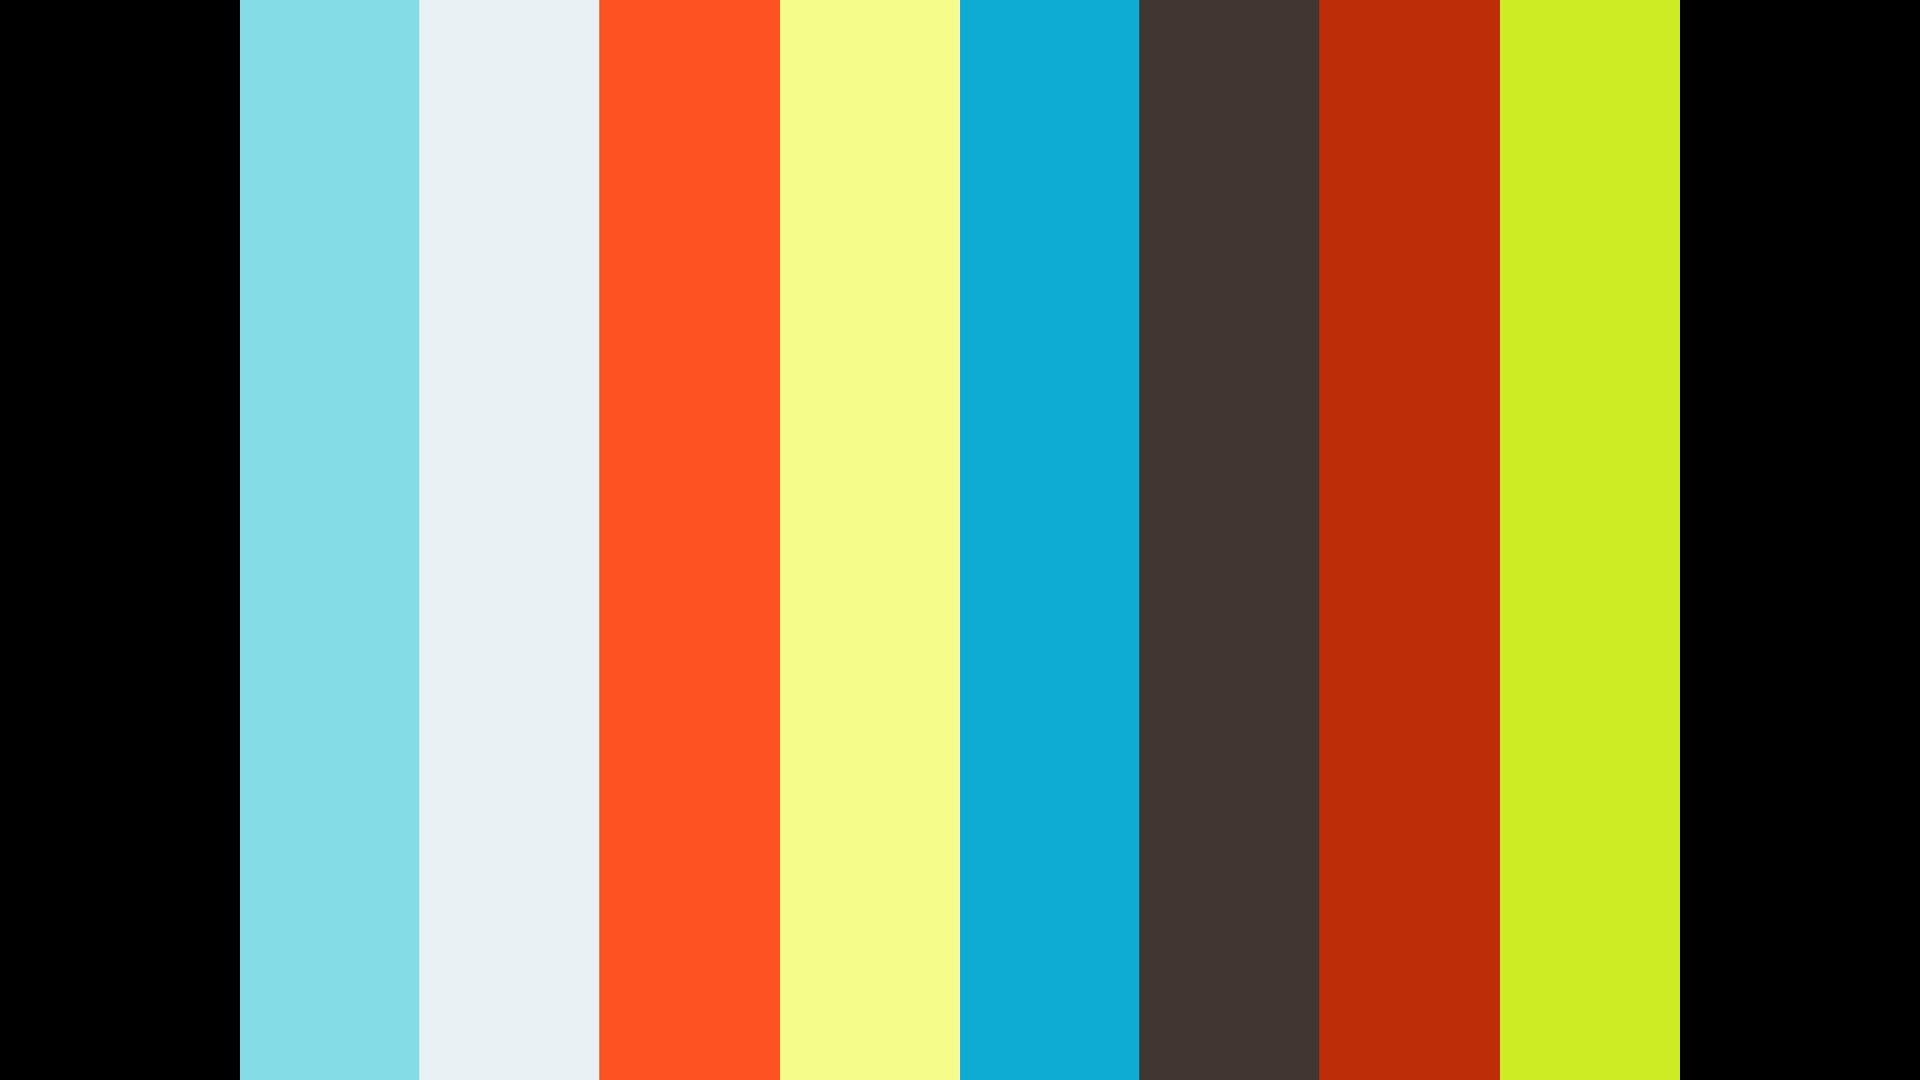 Should Parliament's Speaker be more independent from political parties?